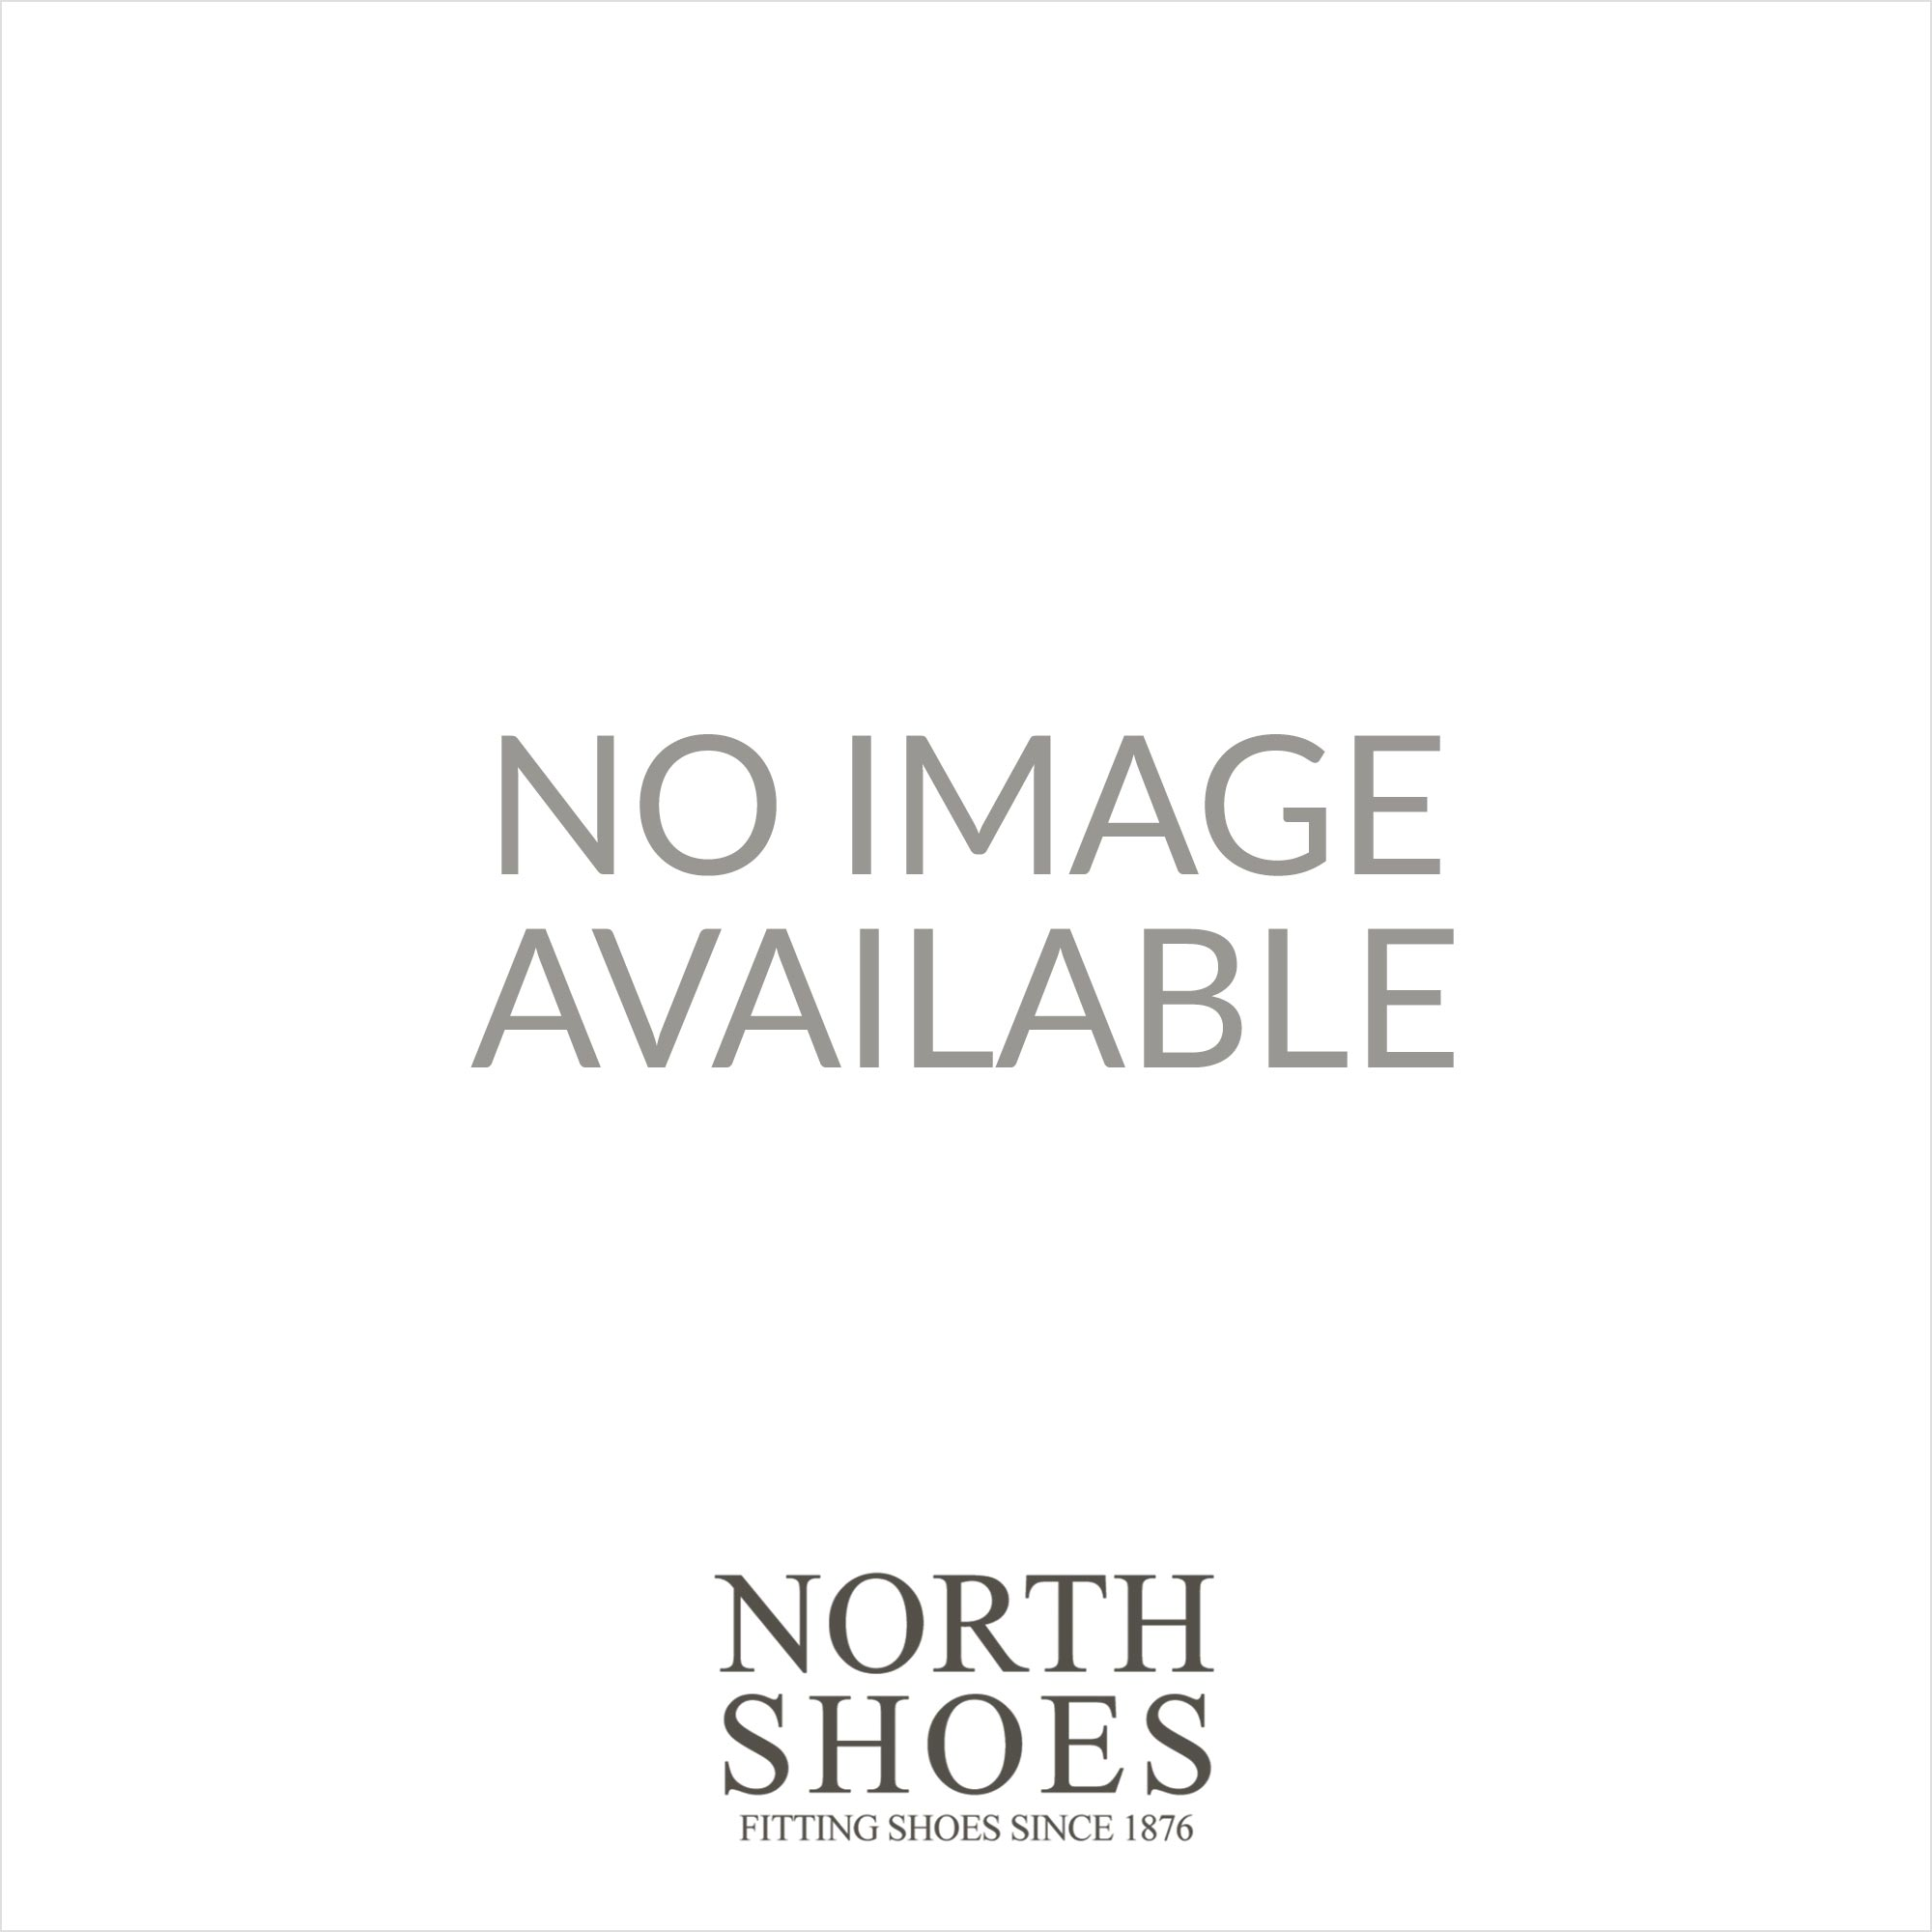 9013e84a1376 ... Skechers Relaxed Fit  Quantum Flex - Country Walker 52905 Black  Suede Mesh Fabric Mens